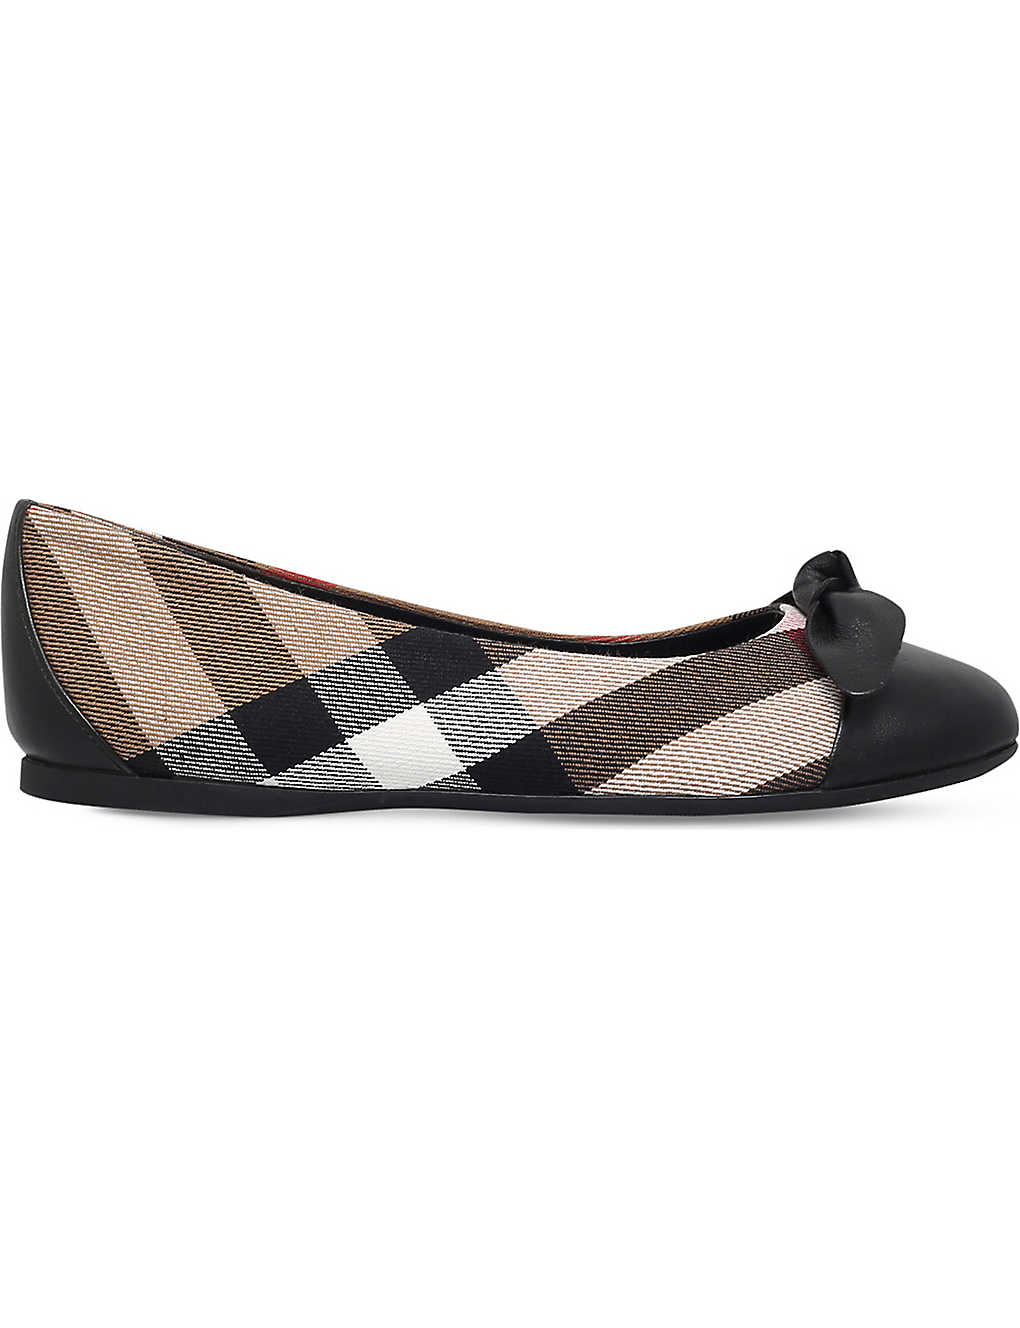 895dd64a41cc BURBERRY - Yaxley checked canvas and leather flats 5-9 years ...